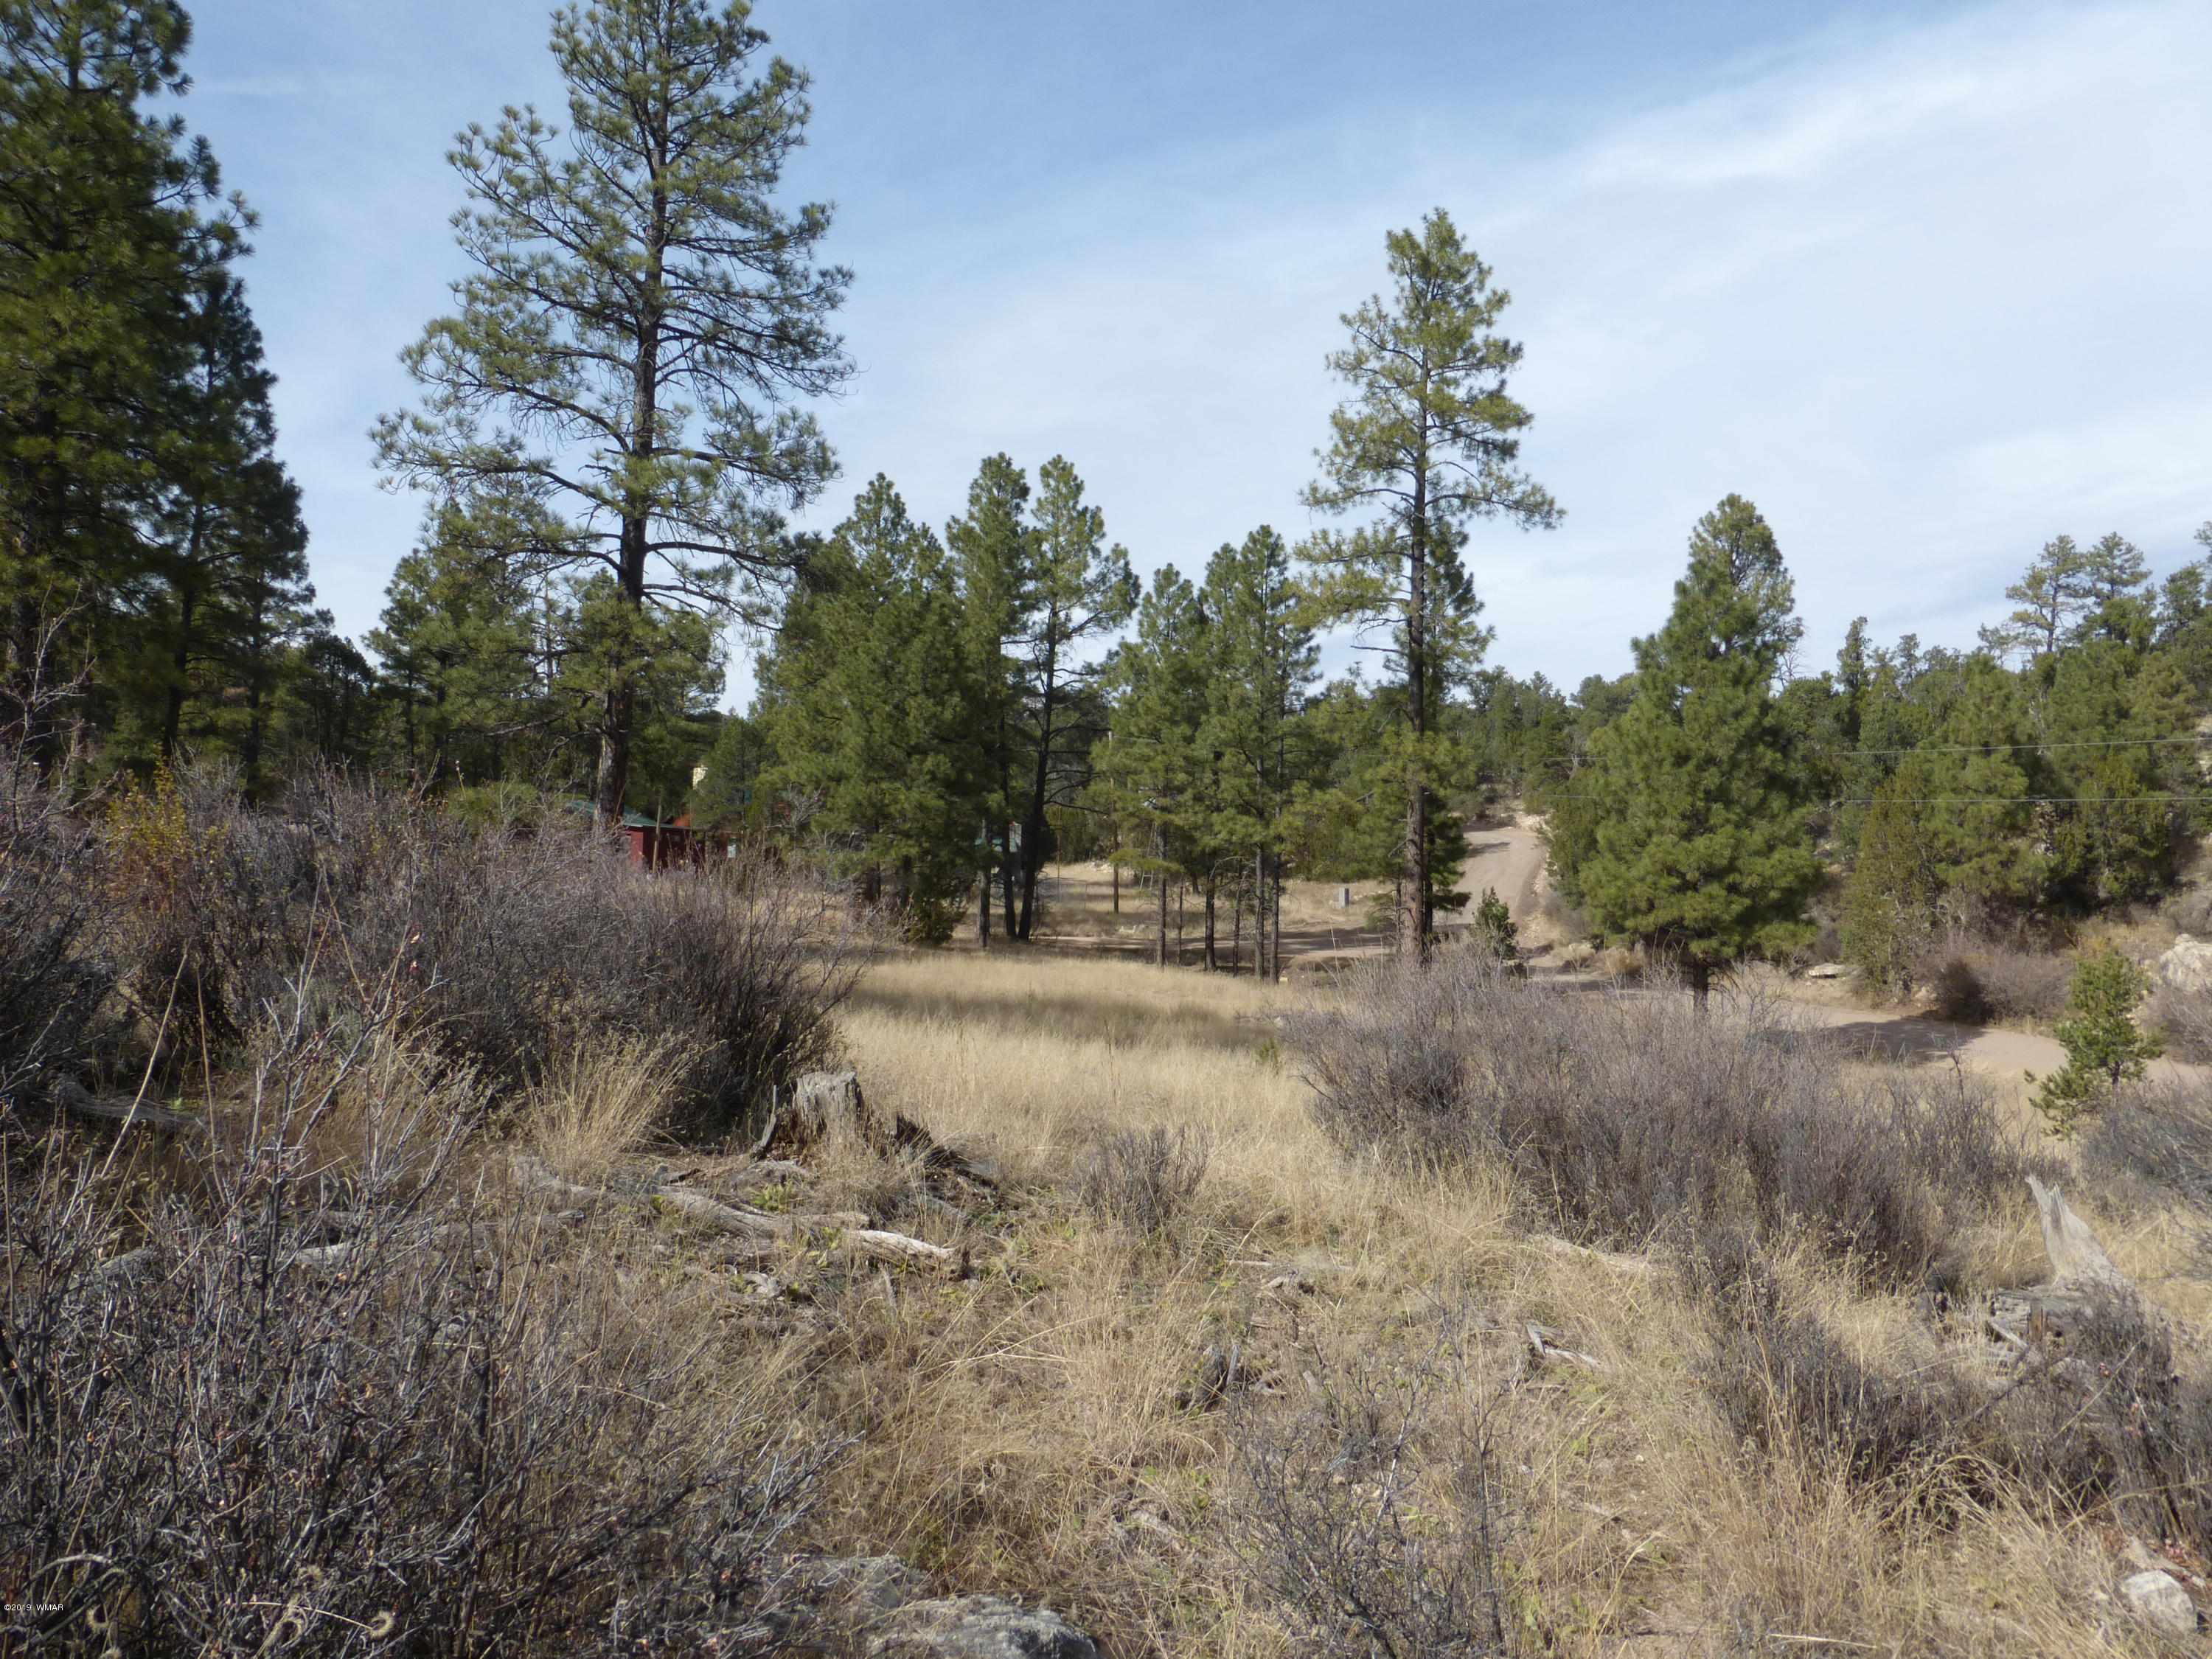 Super location! This 3.00 acre homesite has lots of potential with tall pines & level areas for your custom cabin or manufactured home plus hillside too. Power & water are available & a septic system is needed. Close to schools & market & easy access from paved roads. Just a short distance to national forest with public access for miles of riding, hiking or quads.